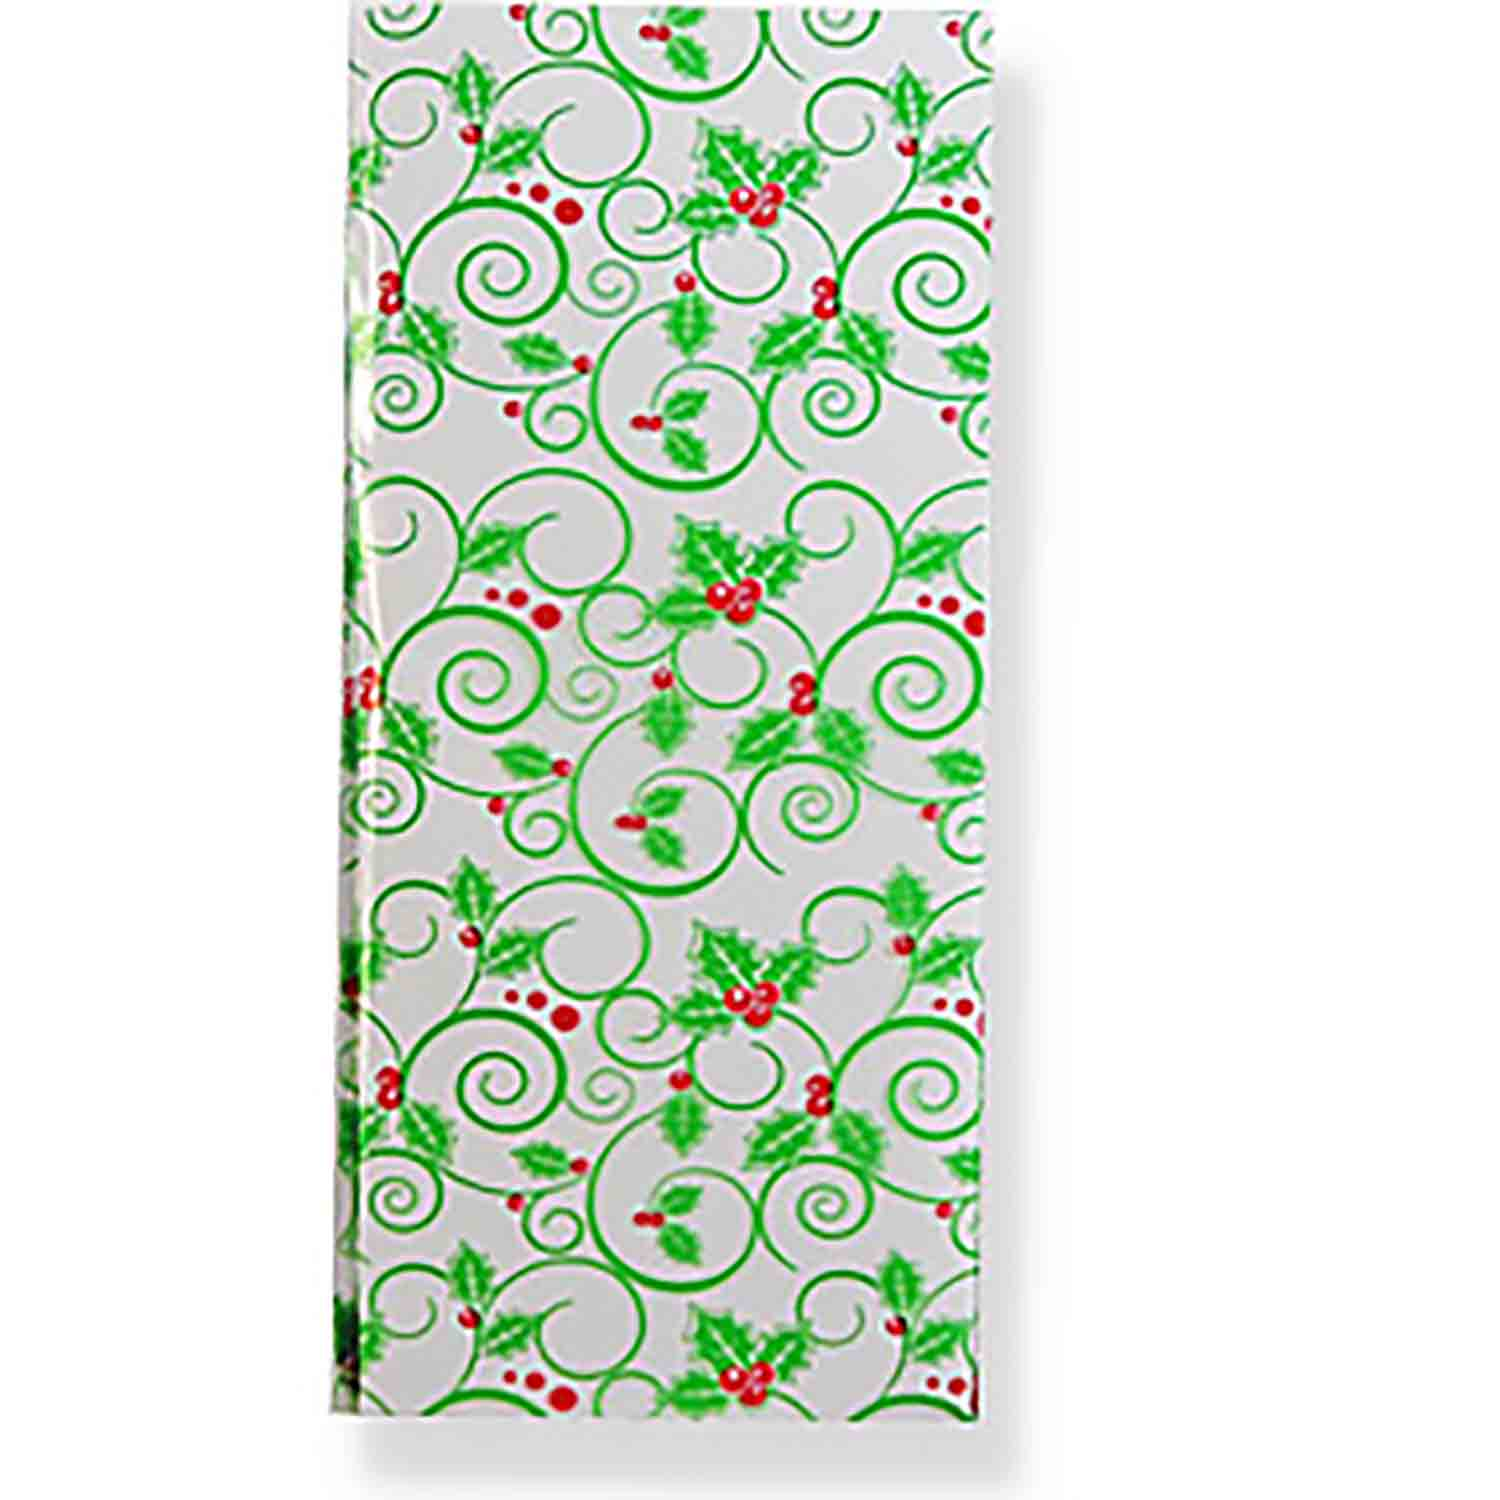 "4"" x 2 3/4"" x 9"" Holly Cellophane Bag"